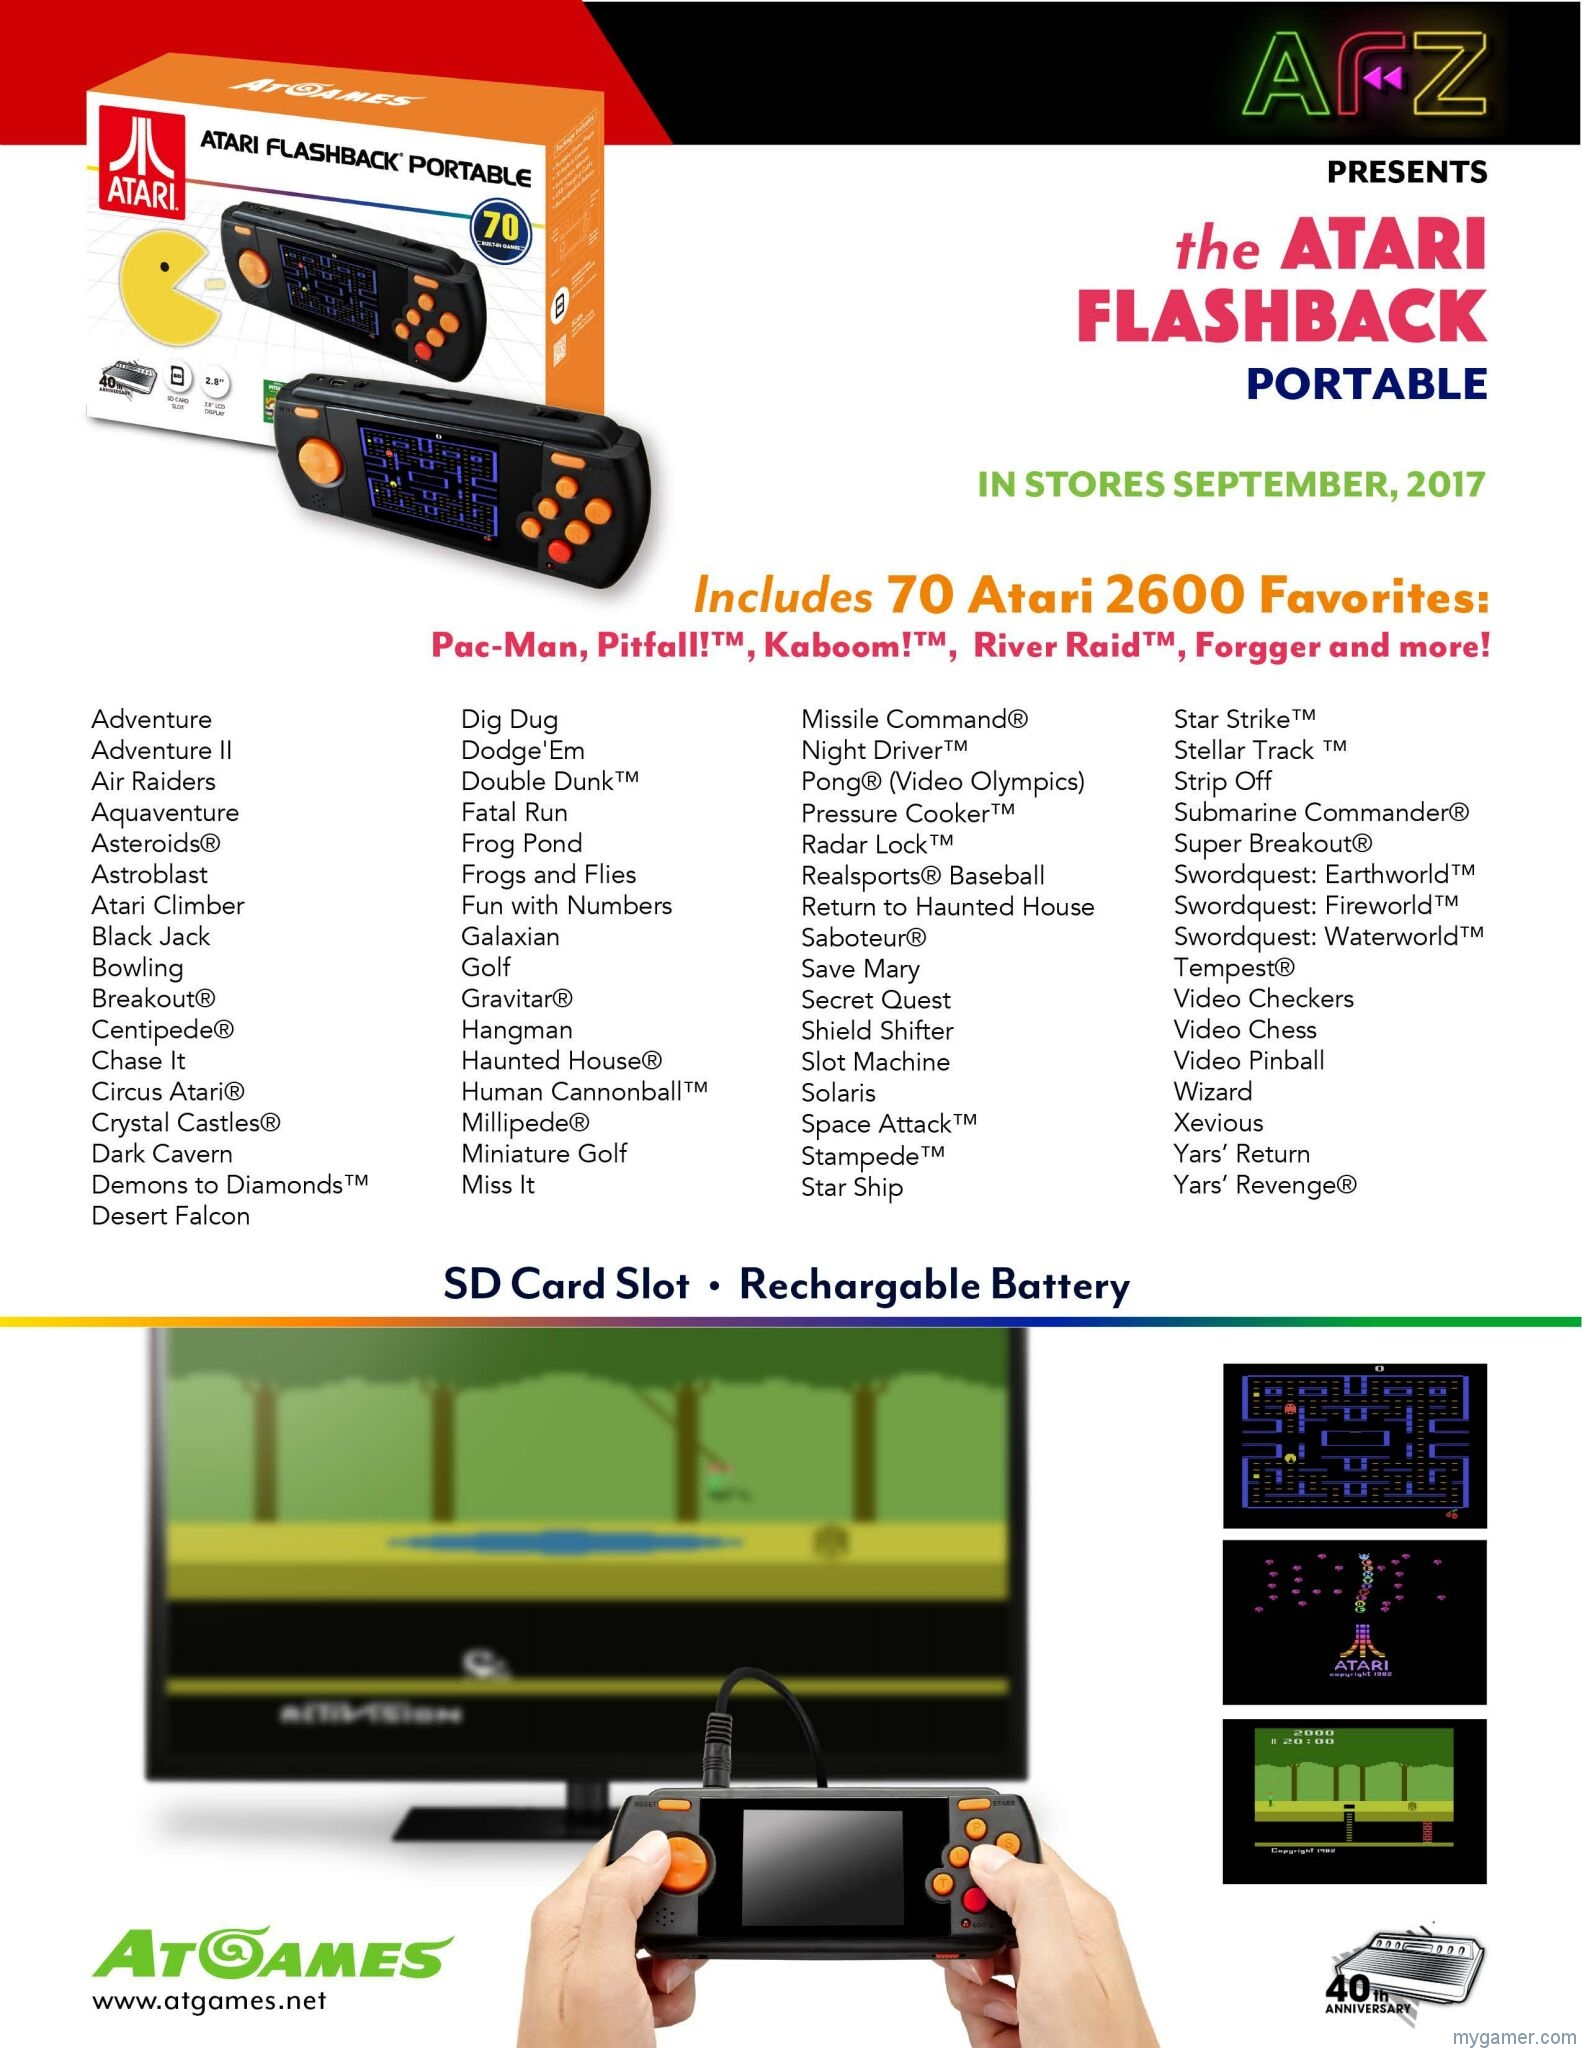 [object object] Details on the Atari and Genesis Flashback Systems 2017 Atari Flashback Portable